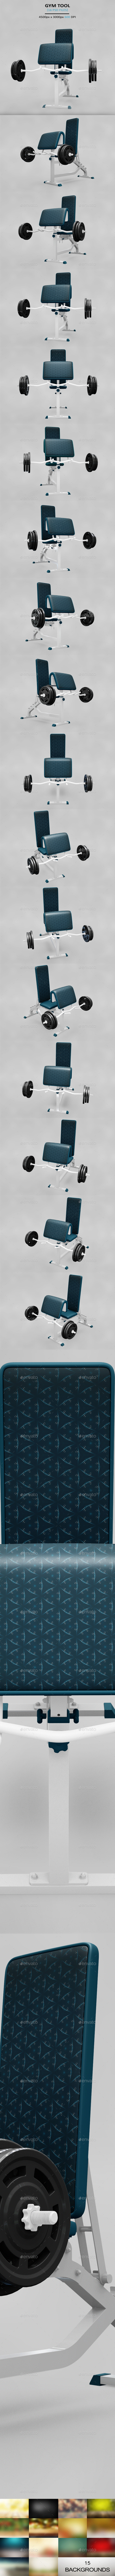 GraphicRiver Gym Tool MockUP 20671901